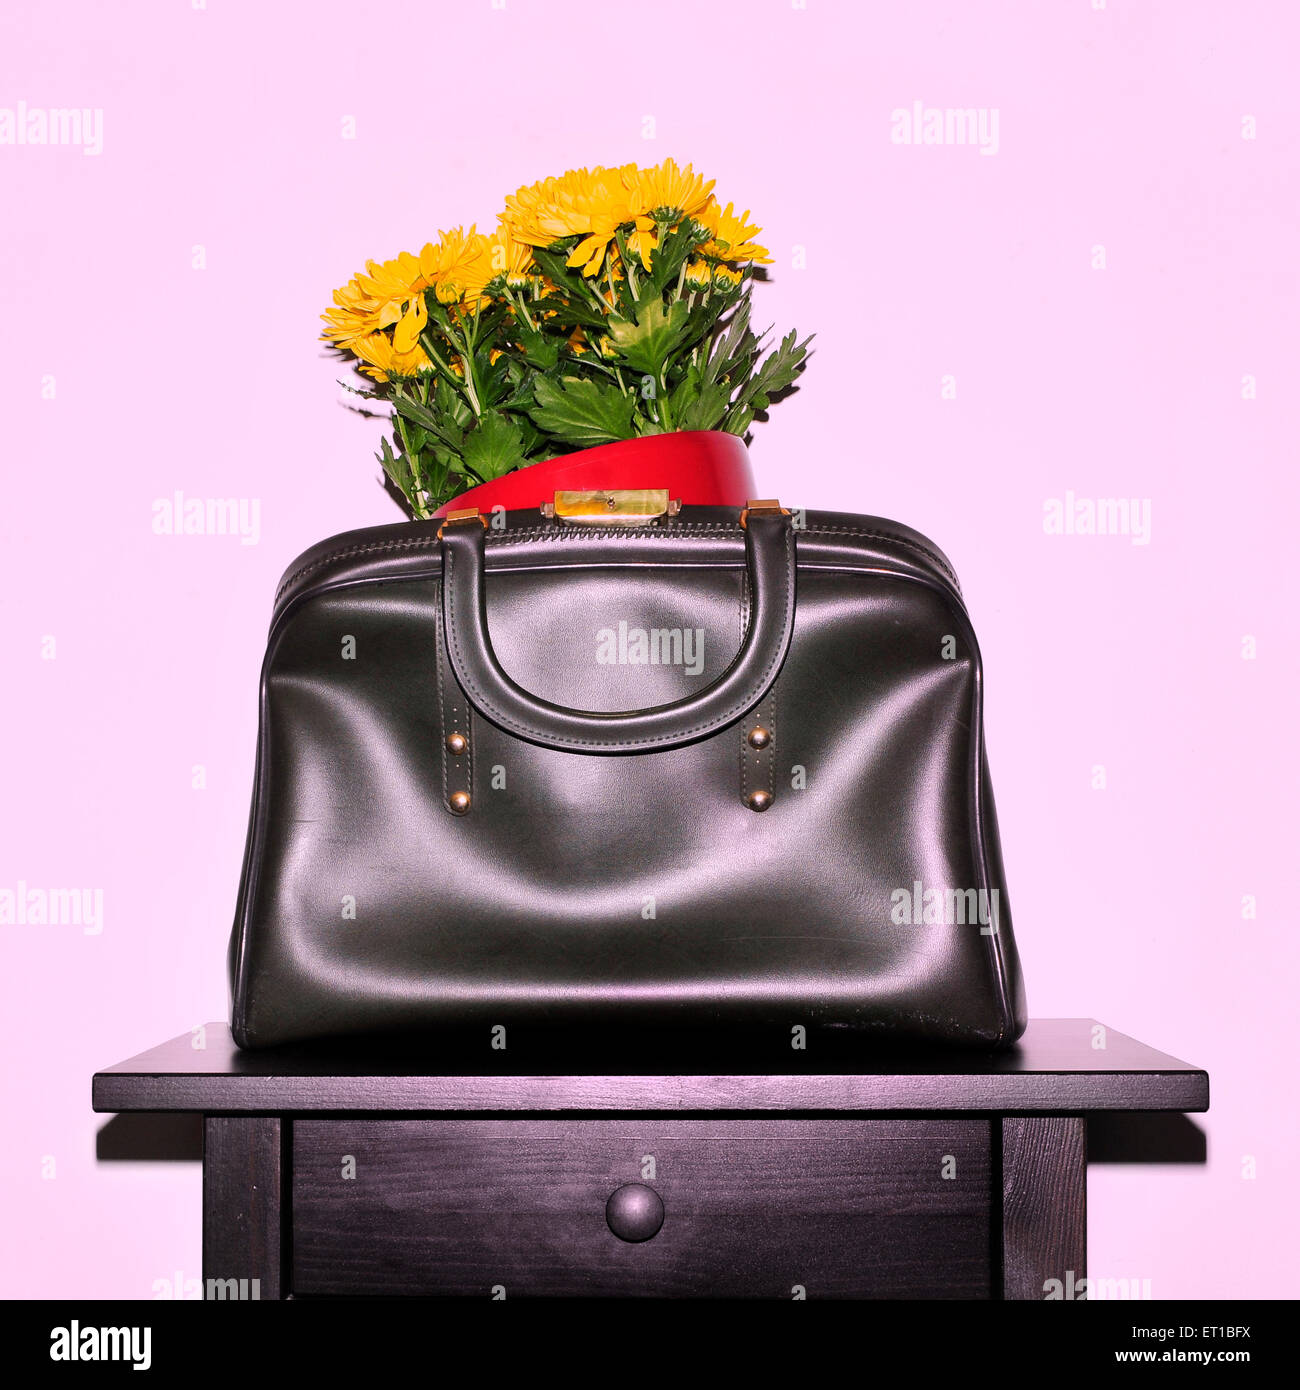 yellow chrysanthemum flowers in a vintage leather bag on a black table, with a retro snapshot effect - Stock Image